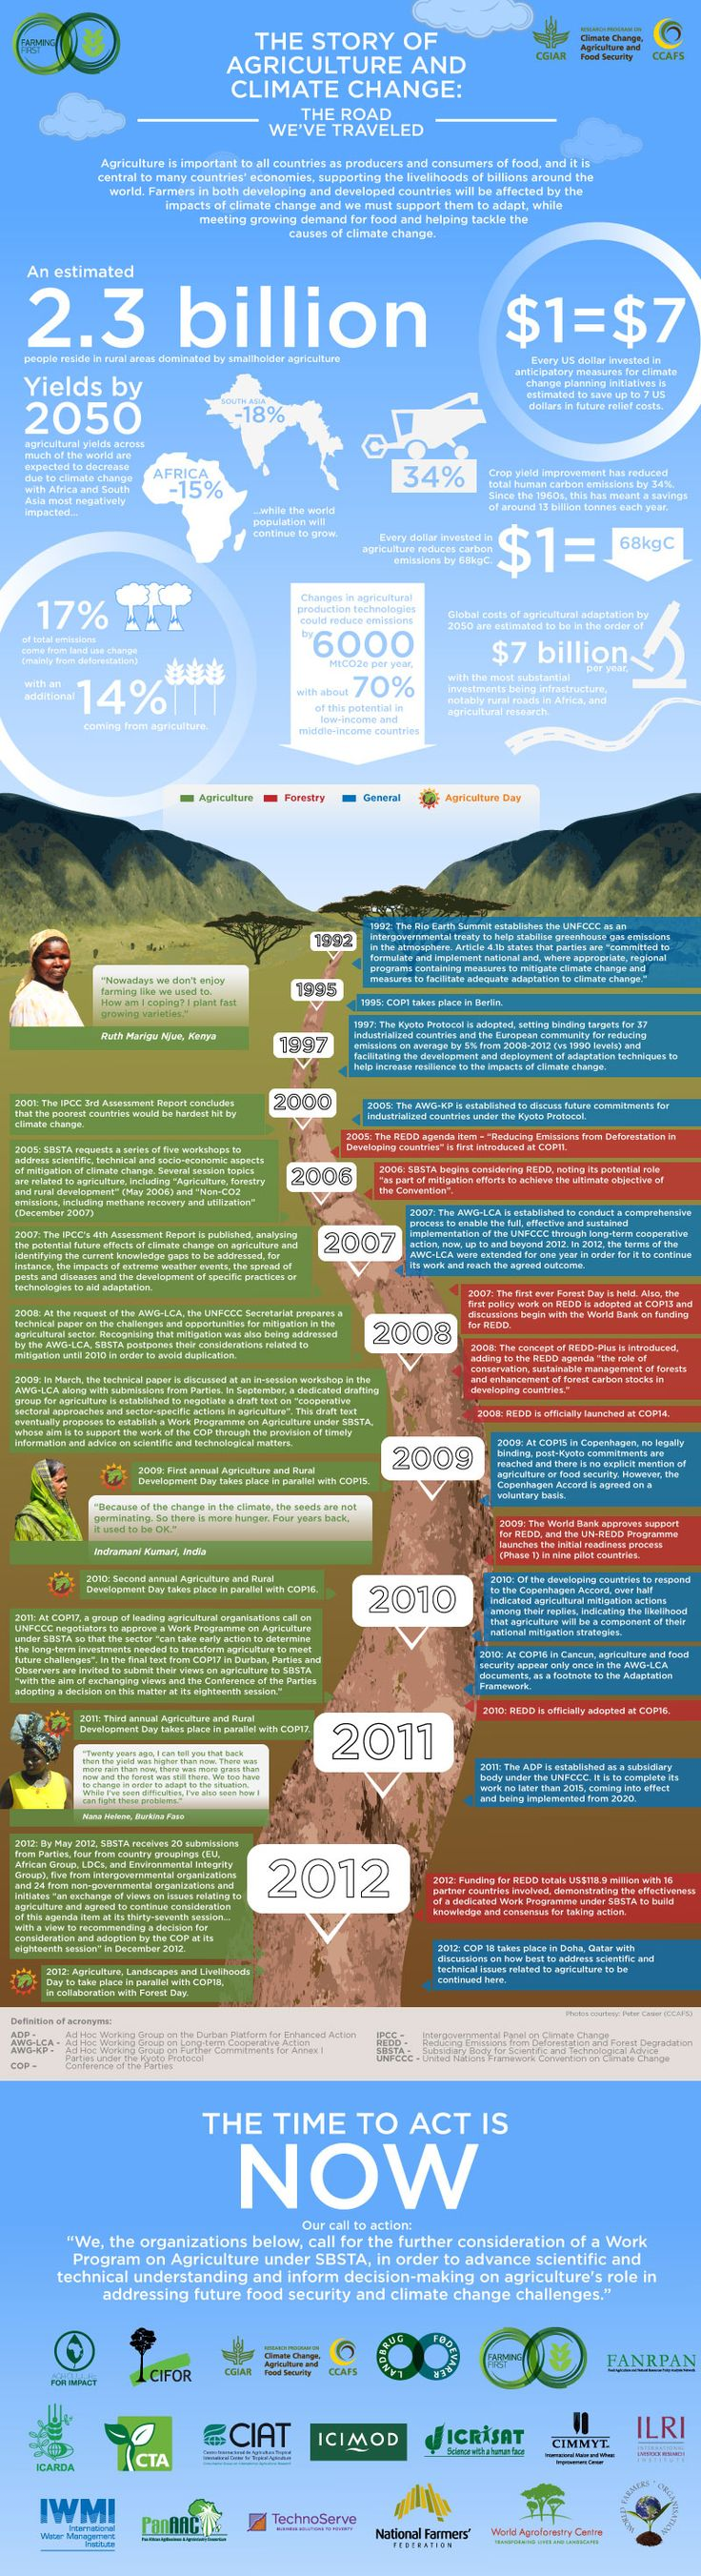 best images about multimodal essay info graphics the story of agriculture and climate change the road we ve traveled infographic